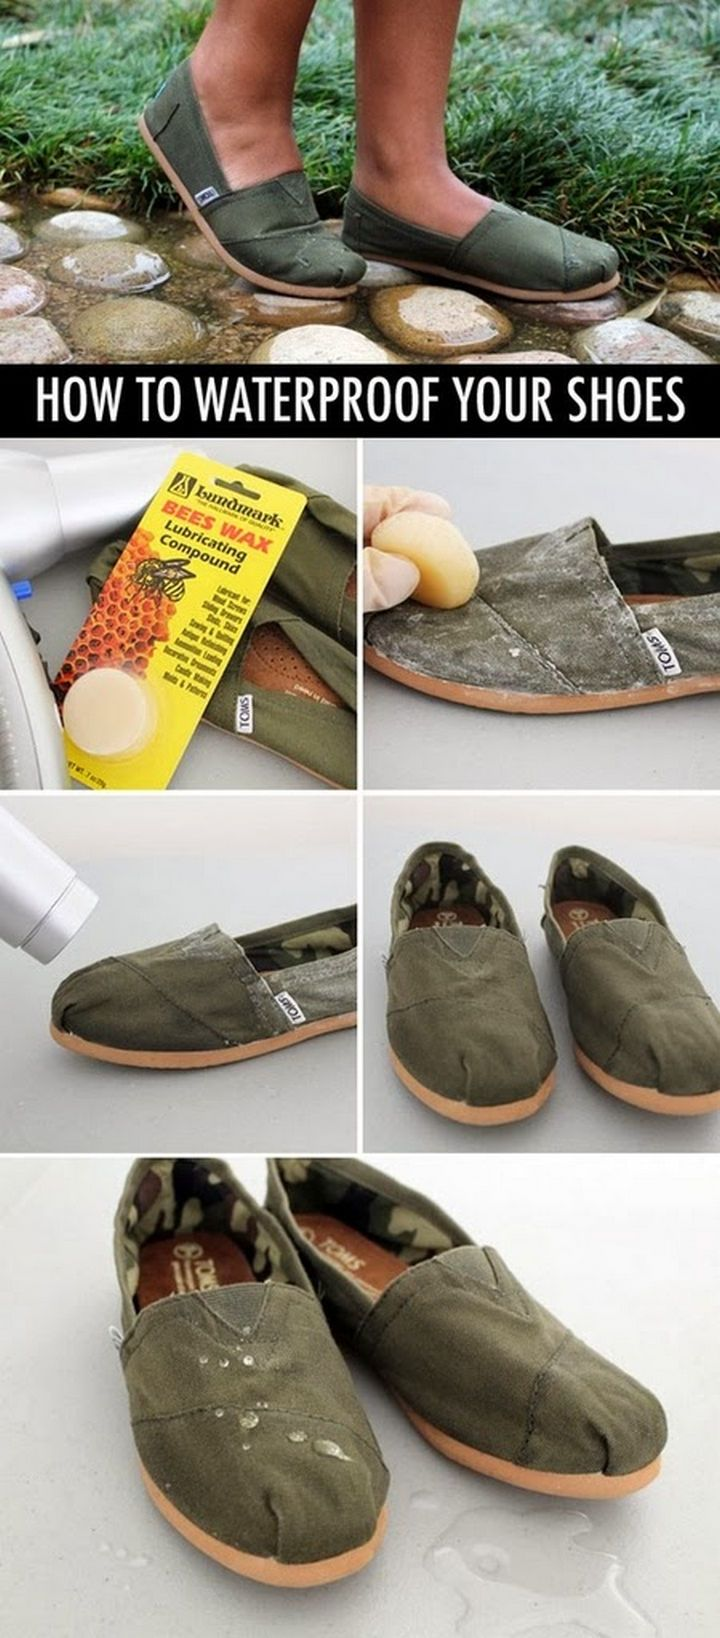 Waterproof canvas shoes with bees wax.